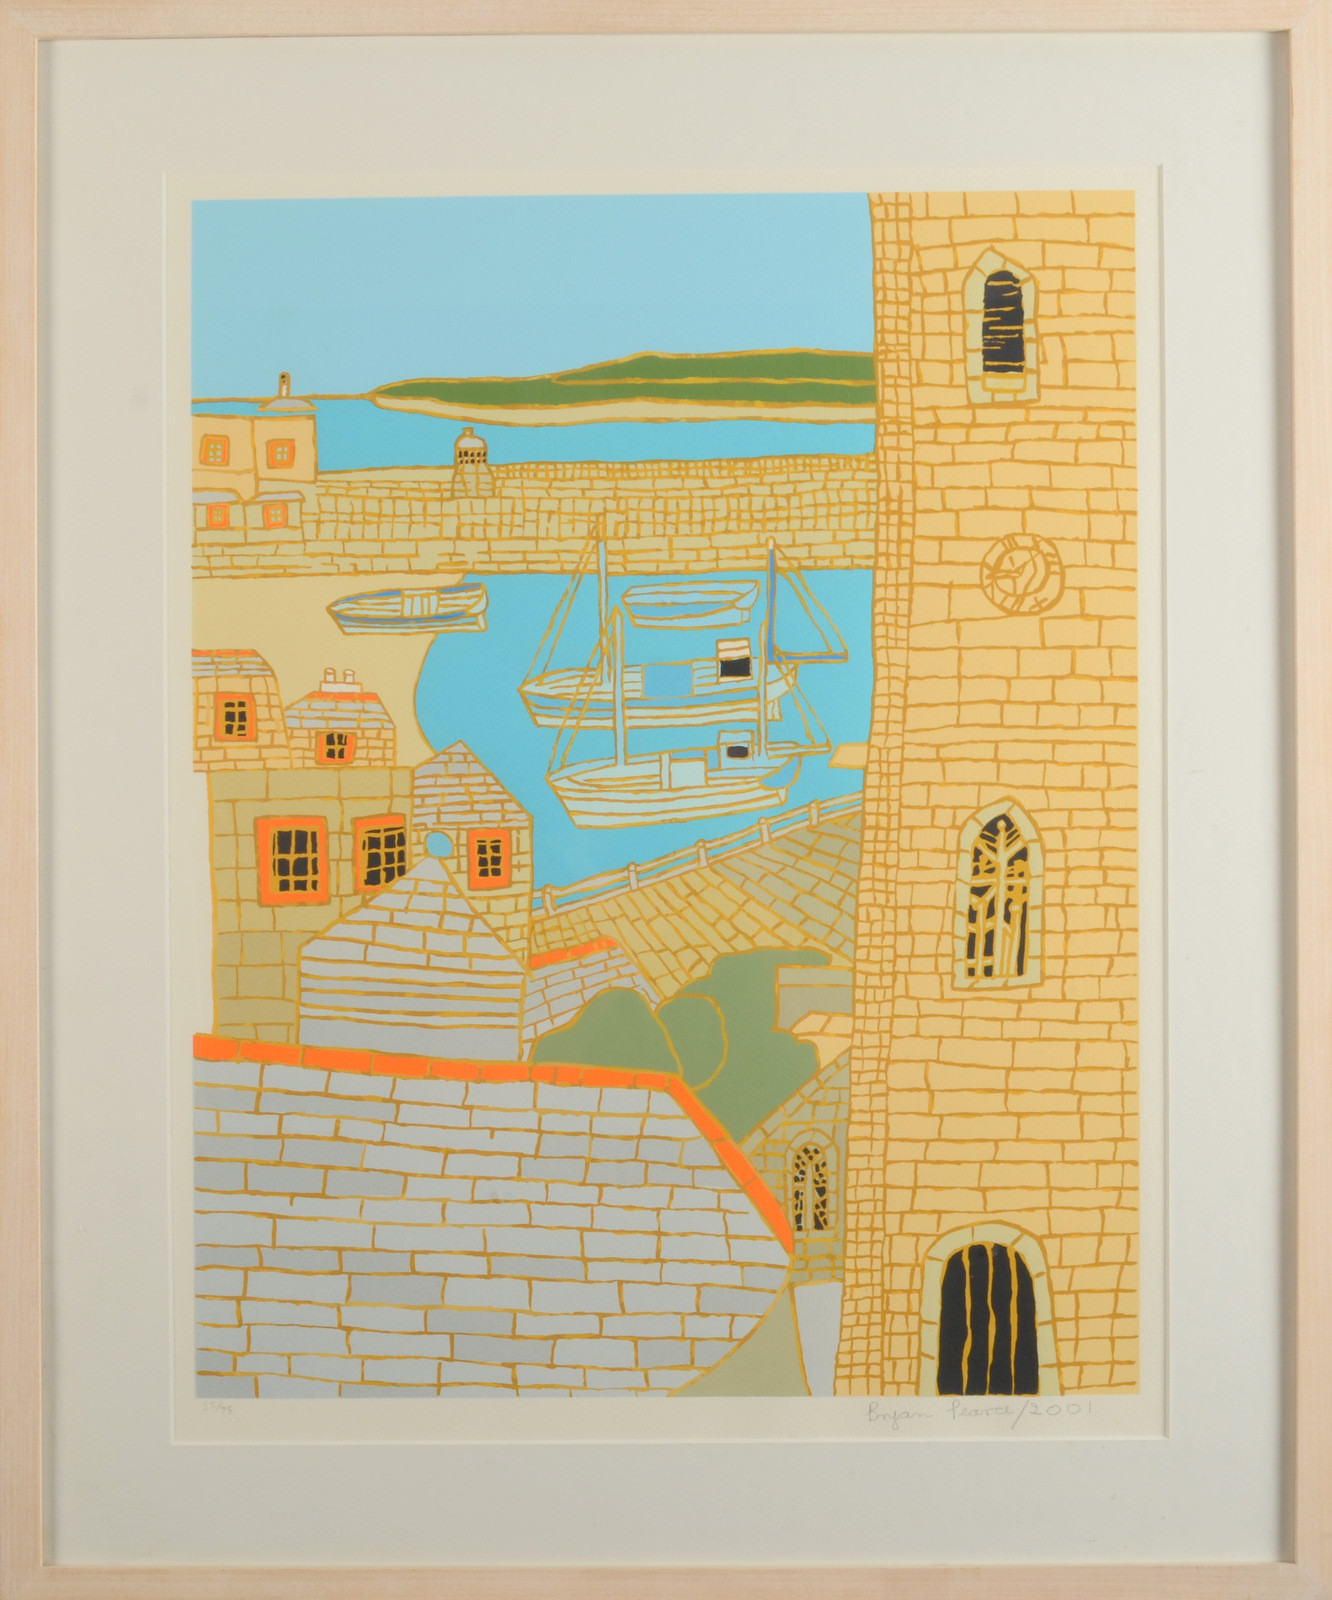 <span class=&#34;link fancybox-details-link&#34;><a href=&#34;/artists/85-bryan-pearce/works/4928-bryan-pearce-st-ives-harbour-view-2001/&#34;>View Detail Page</a></span><div class=&#34;artist&#34;><strong>Bryan Pearce</strong></div> 1929-2007 <div class=&#34;title&#34;><em>St Ives Harbour View</em>, 2001</div> <div class=&#34;signed_and_dated&#34;>signed, dated and editioned in pencil </div> <div class=&#34;medium&#34;>silkscreen print on paper</div> <div class=&#34;dimensions&#34;>artwork: 56 x 44 cm<br /> 22 1/4 x 17 1/4 in</div> <div class=&#34;edition_details&#34;>Edition 35 of 75</div><div class=&#34;copyright_line&#34;>© The Estate of Bryan Pearce</div>